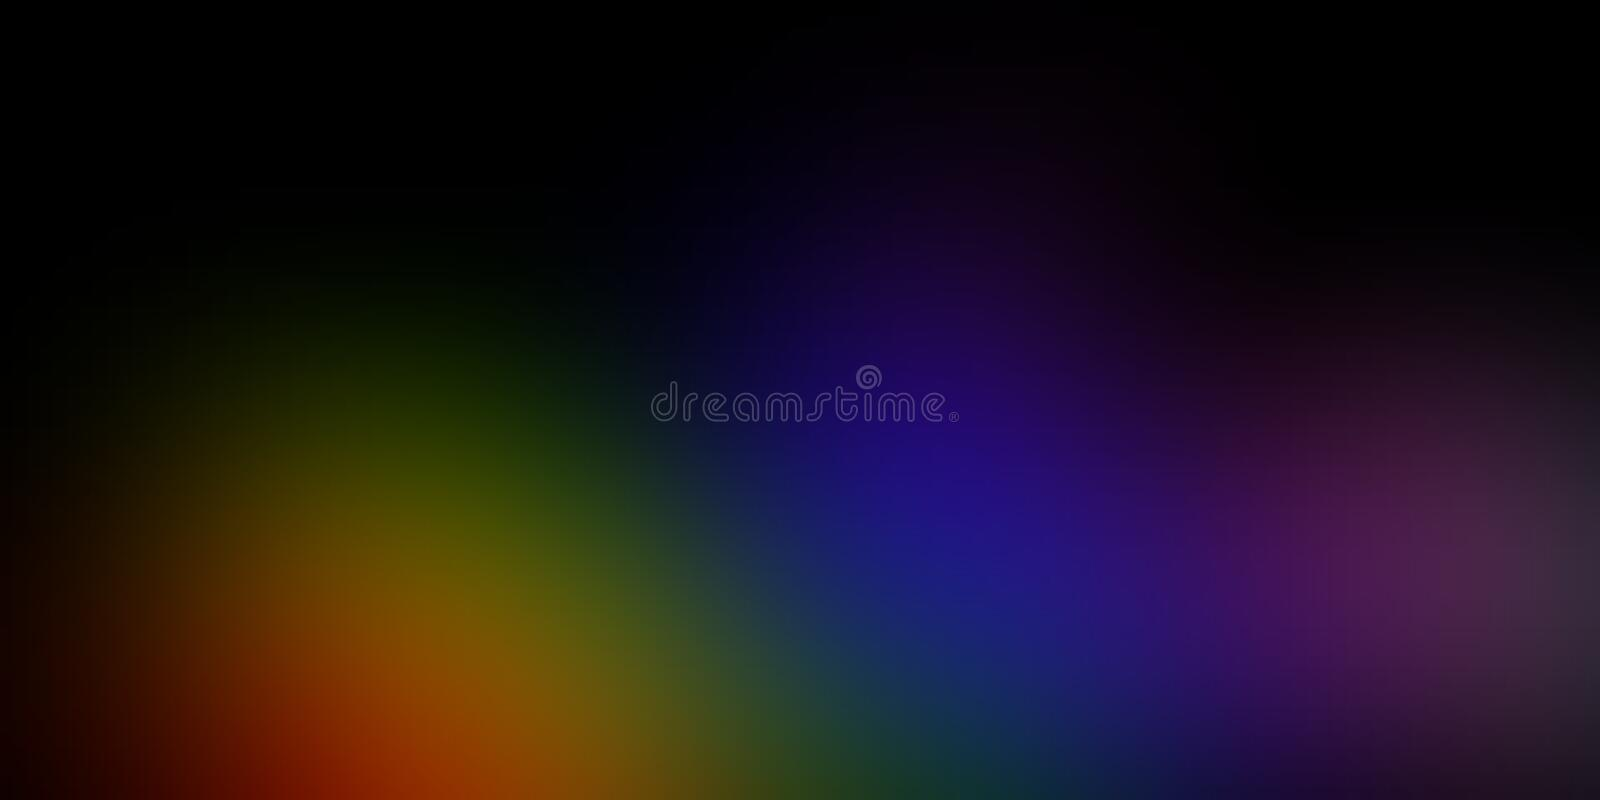 Colorful blur abstract shaded background wallpaper, vector illustration. stock images